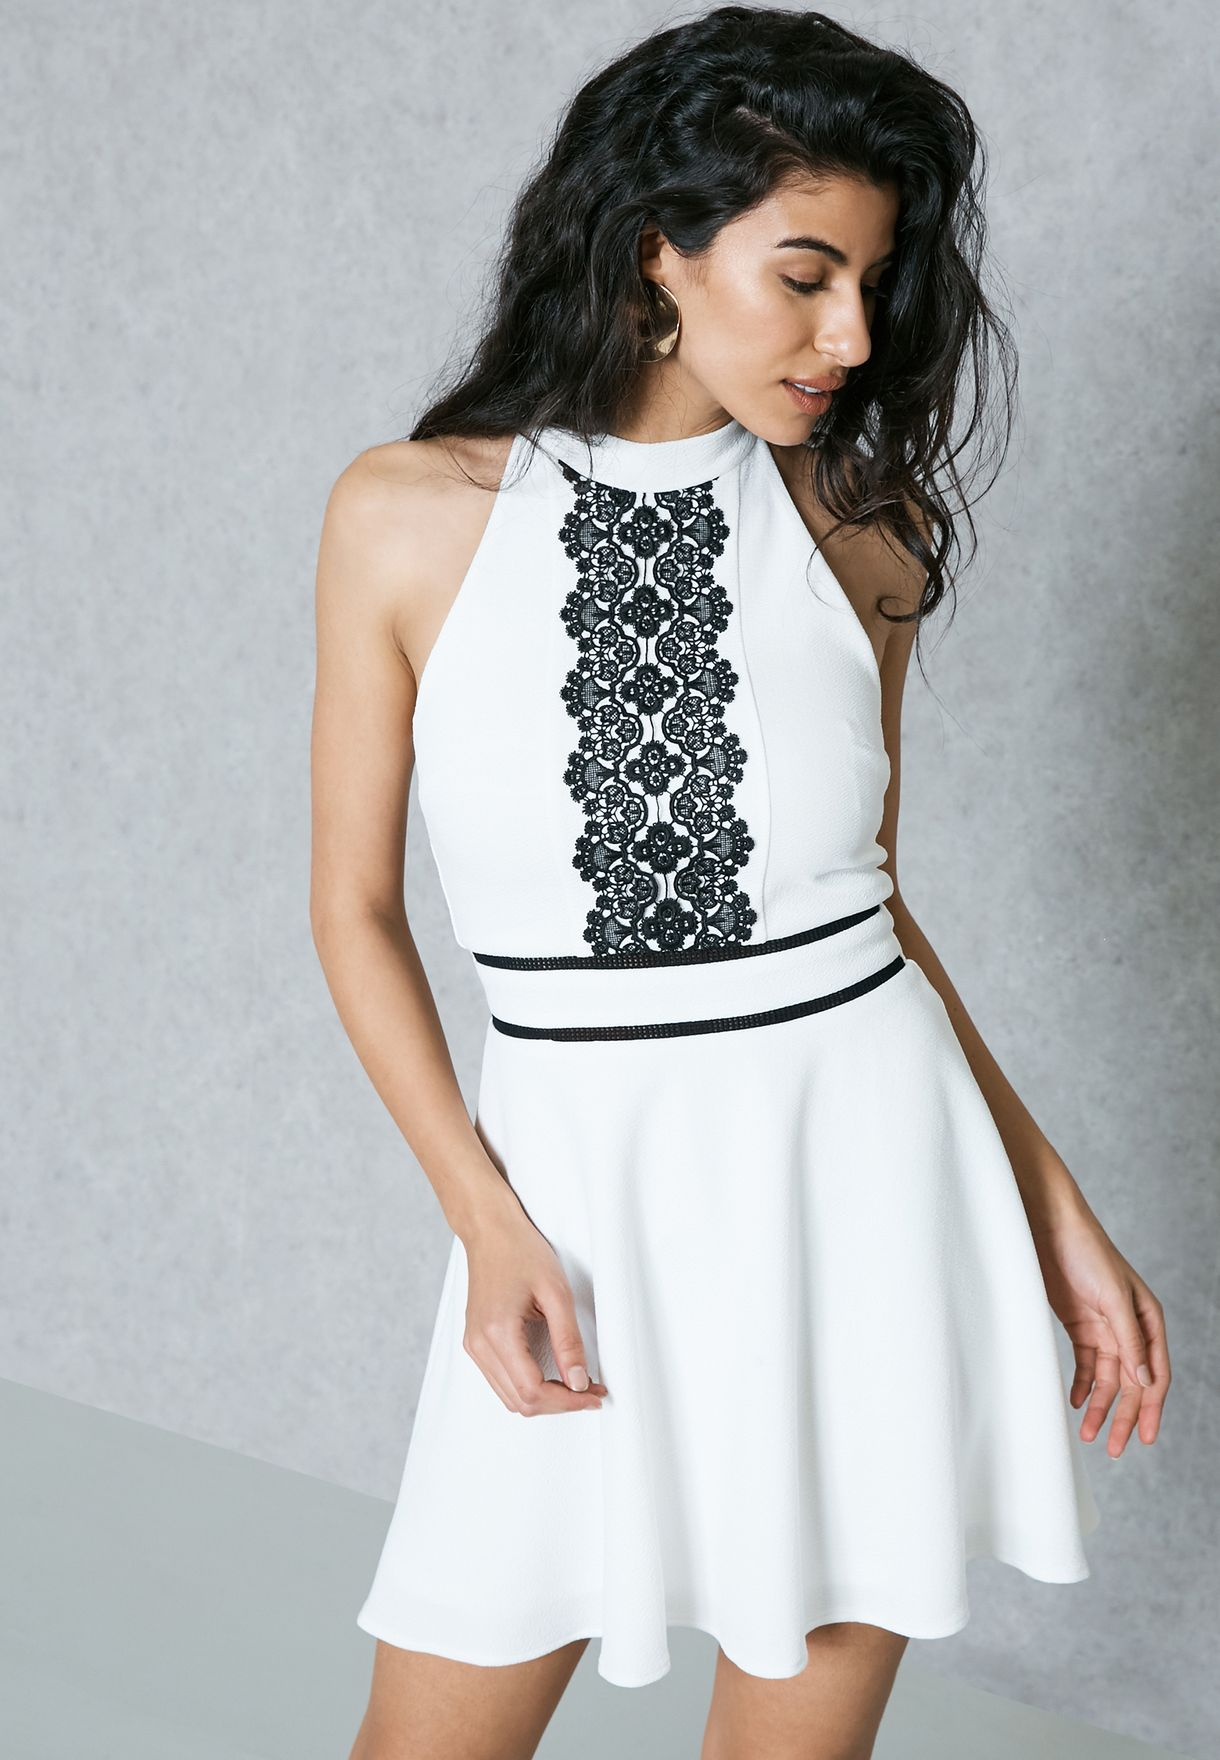 1d818ace13 Shop Miss Selfridge Petite white Lace Detail Skater Dress 34G20TIVR for  Women in Bahrain - MI002AT22NTH